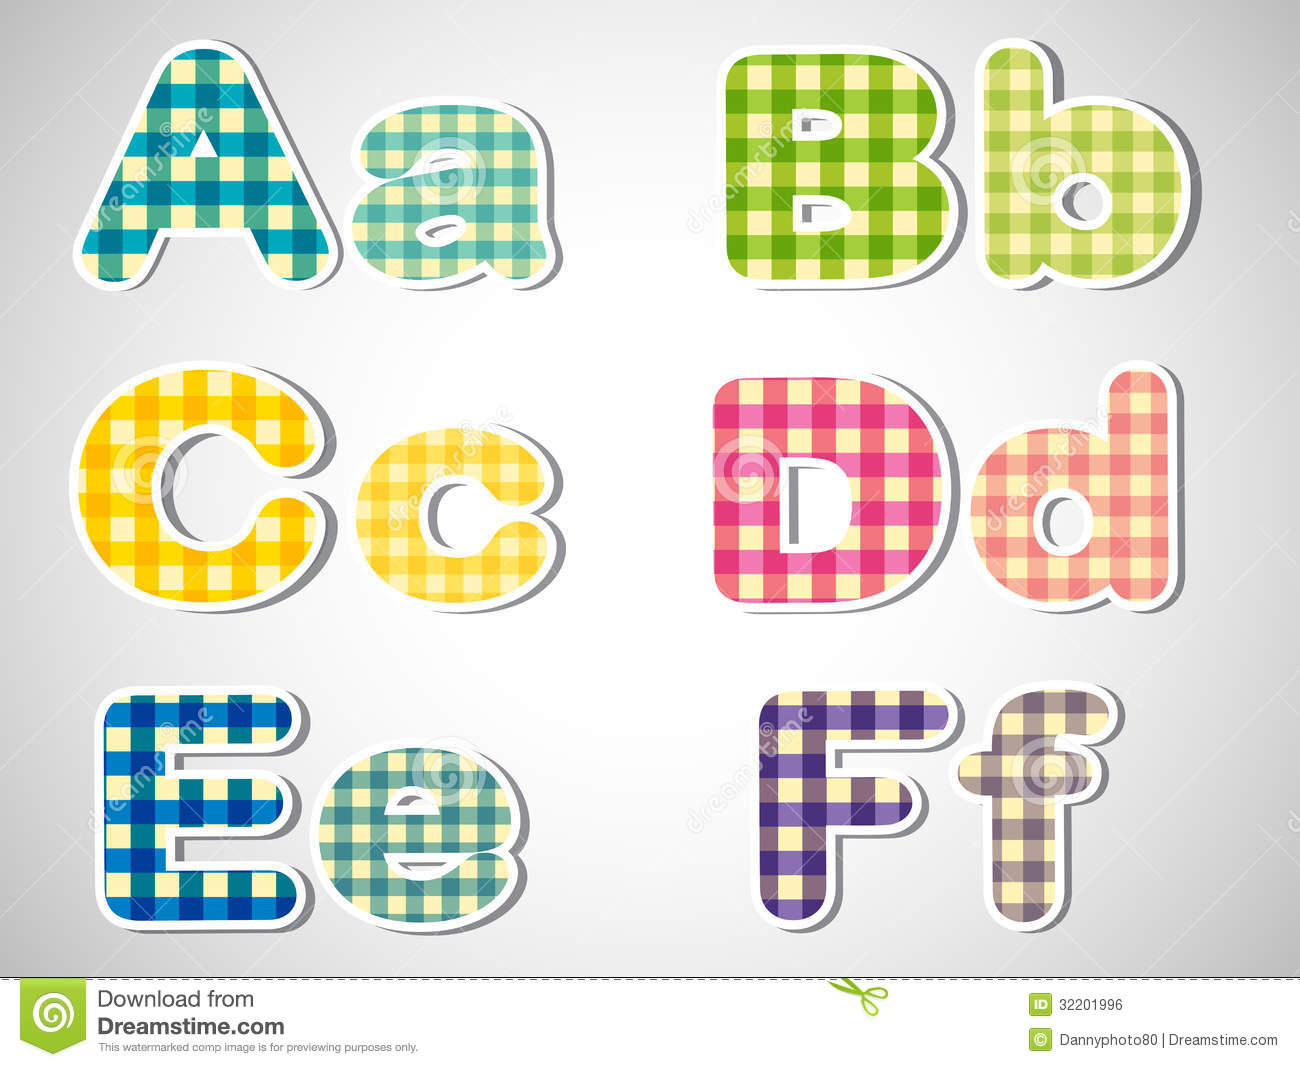 Worksheet Alphabetical Letters in alphabetical letters royalty free stock photos image 4108718 six order image